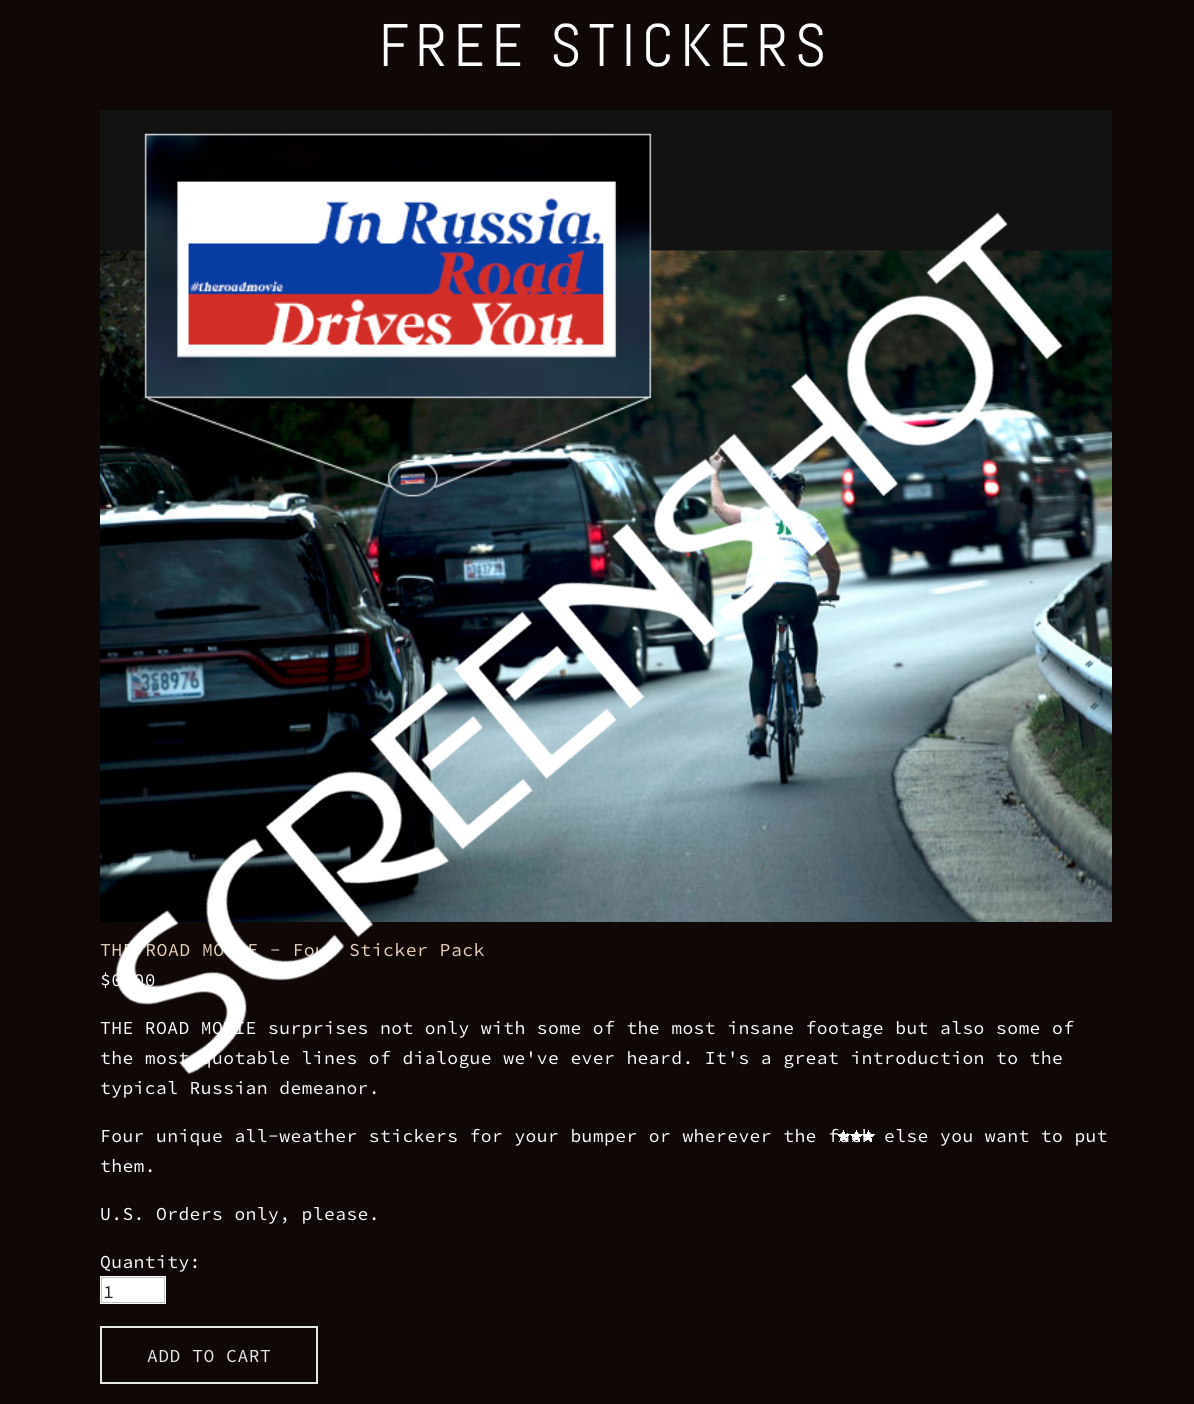 Screenshot of FREE 'In Russia, Road Drives You' Stickers Offer